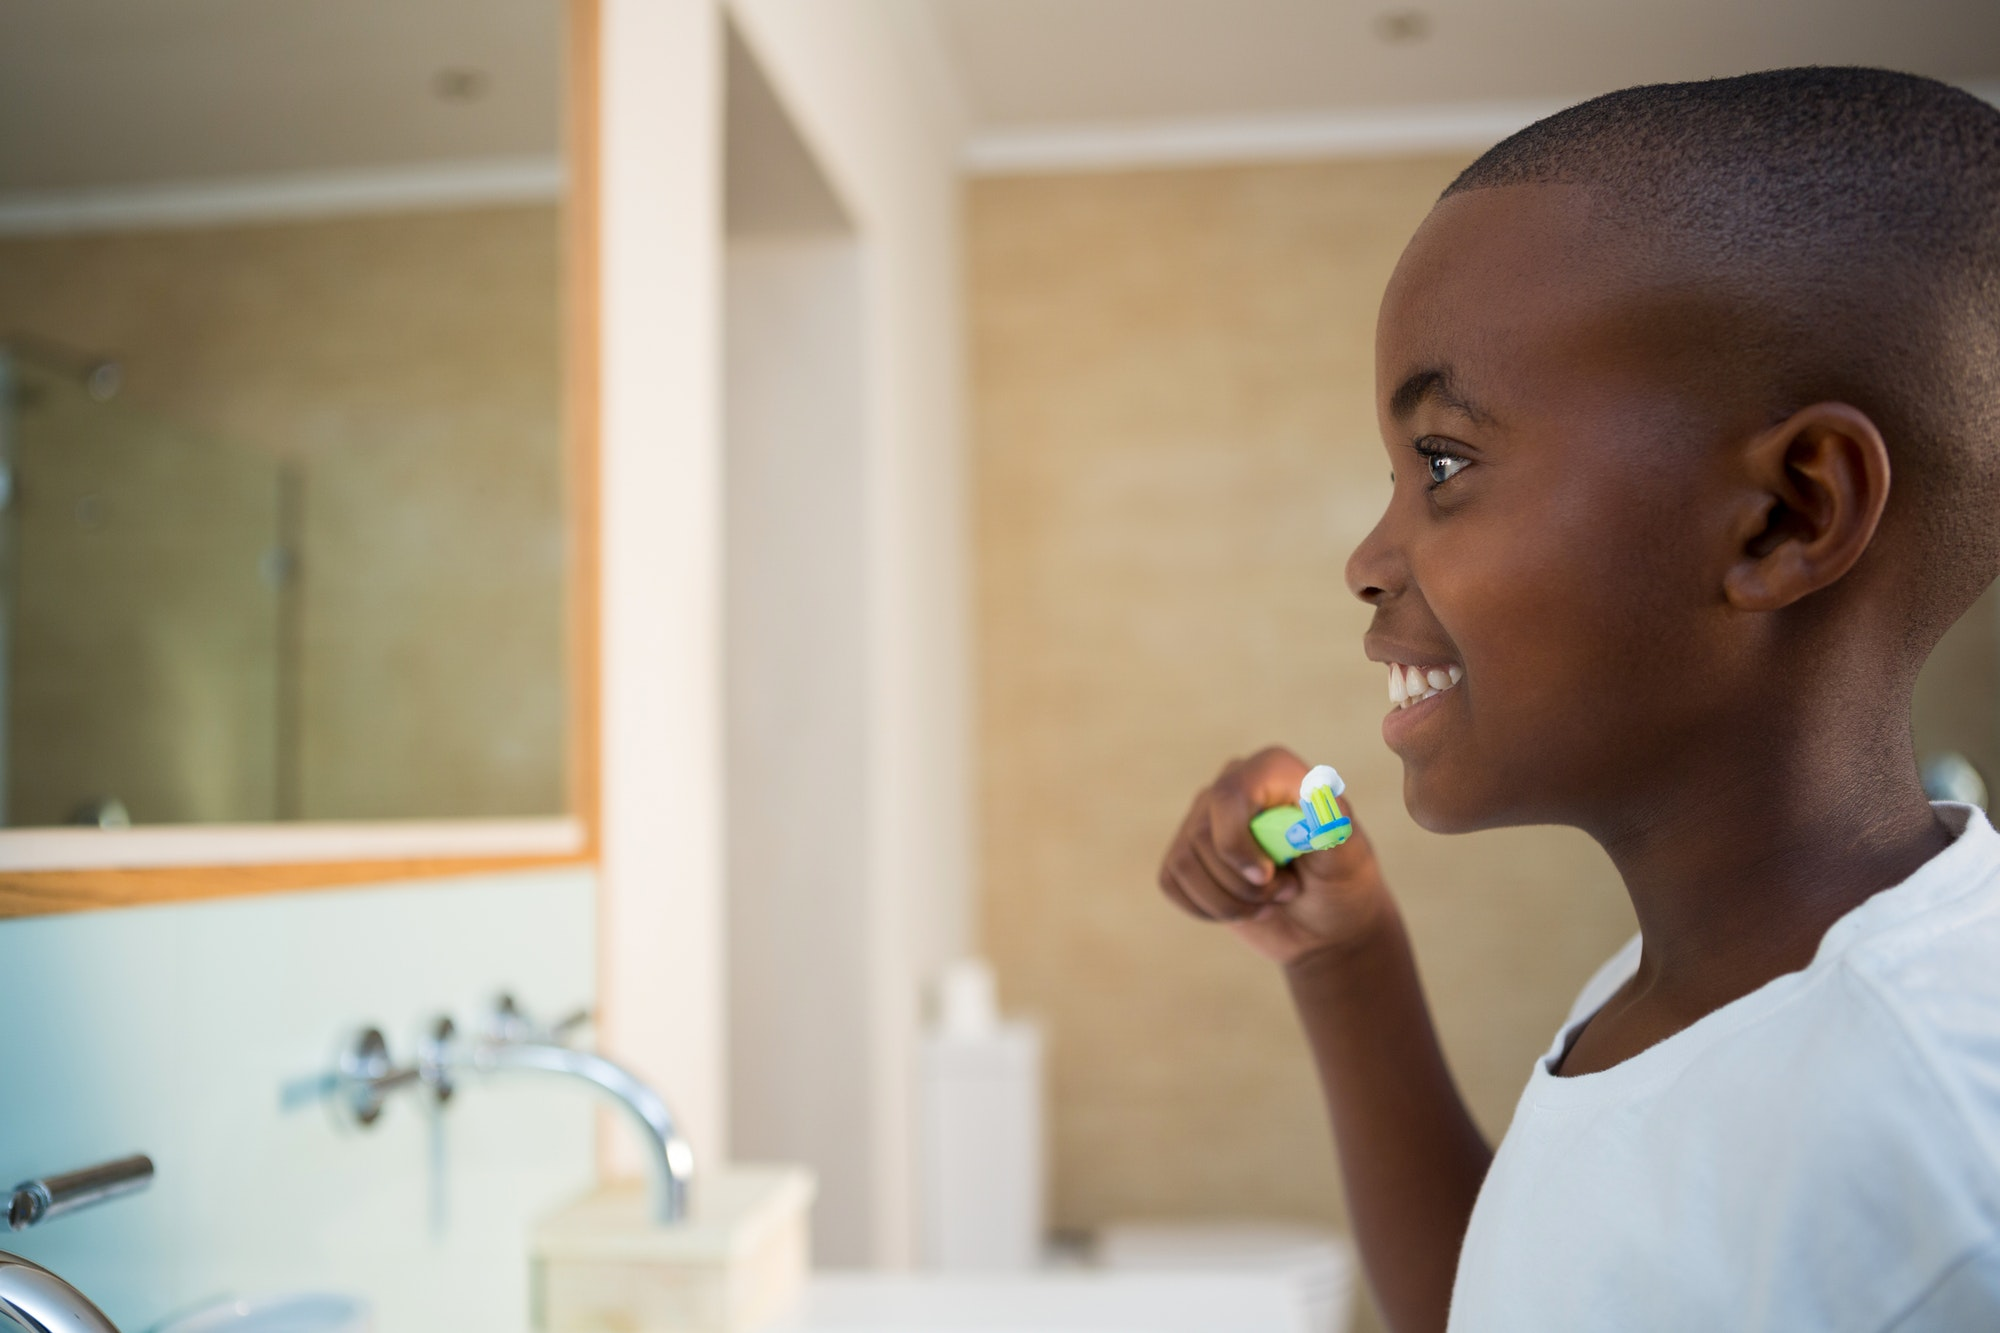 Side view of smiling boy with toothbrush